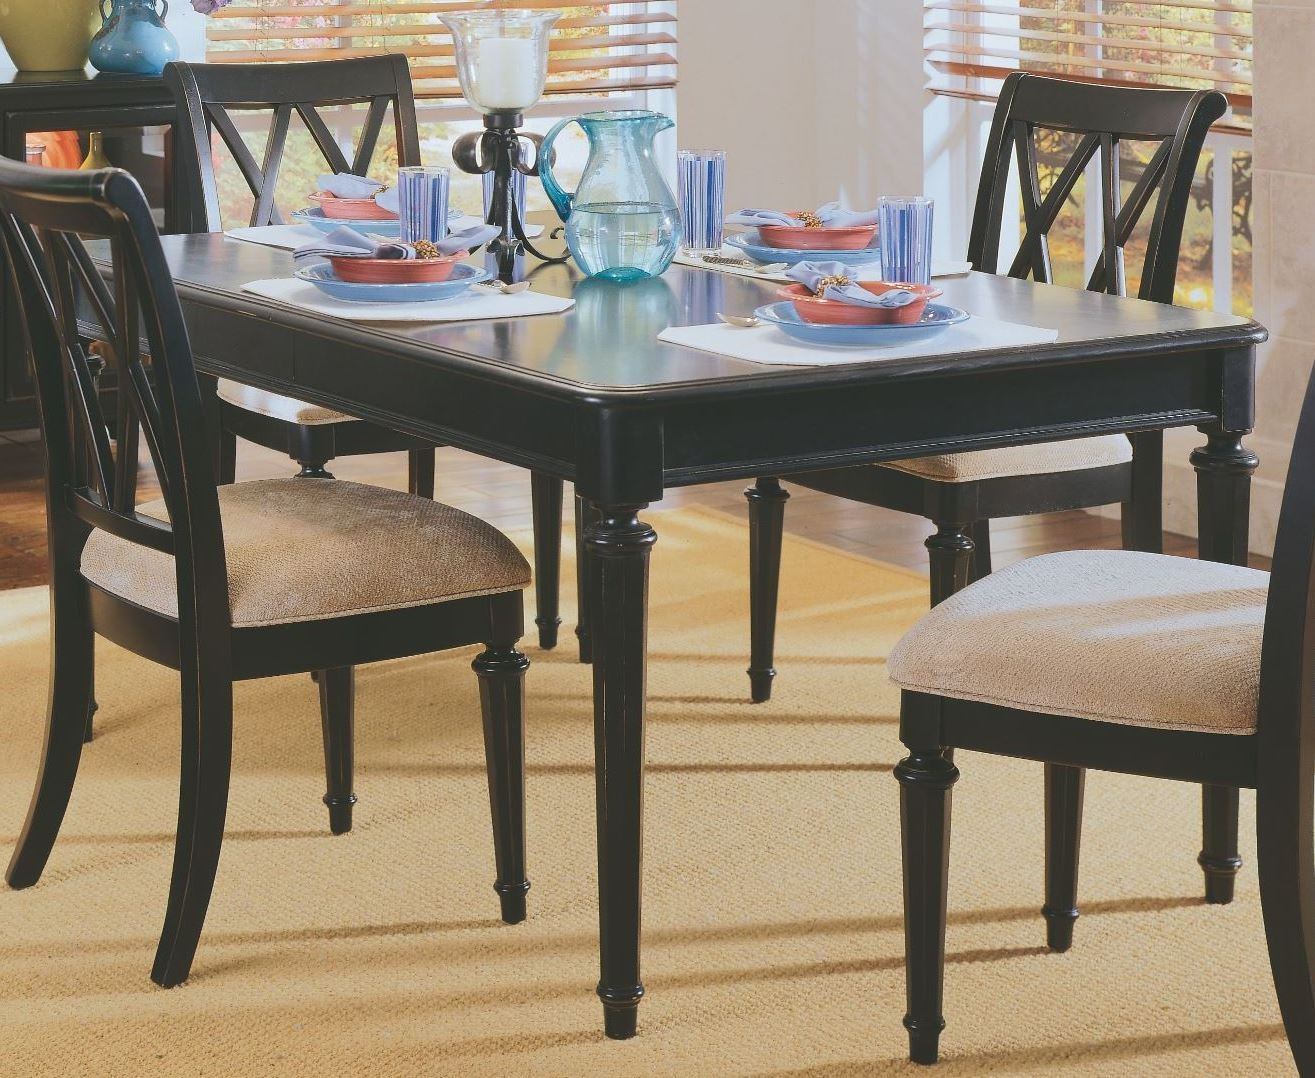 Camden Black Extendable Leg Dining Table from American  : 919 760919 636919 015919 8301 from colemanfurniture.com size 1315 x 1078 jpeg 346kB